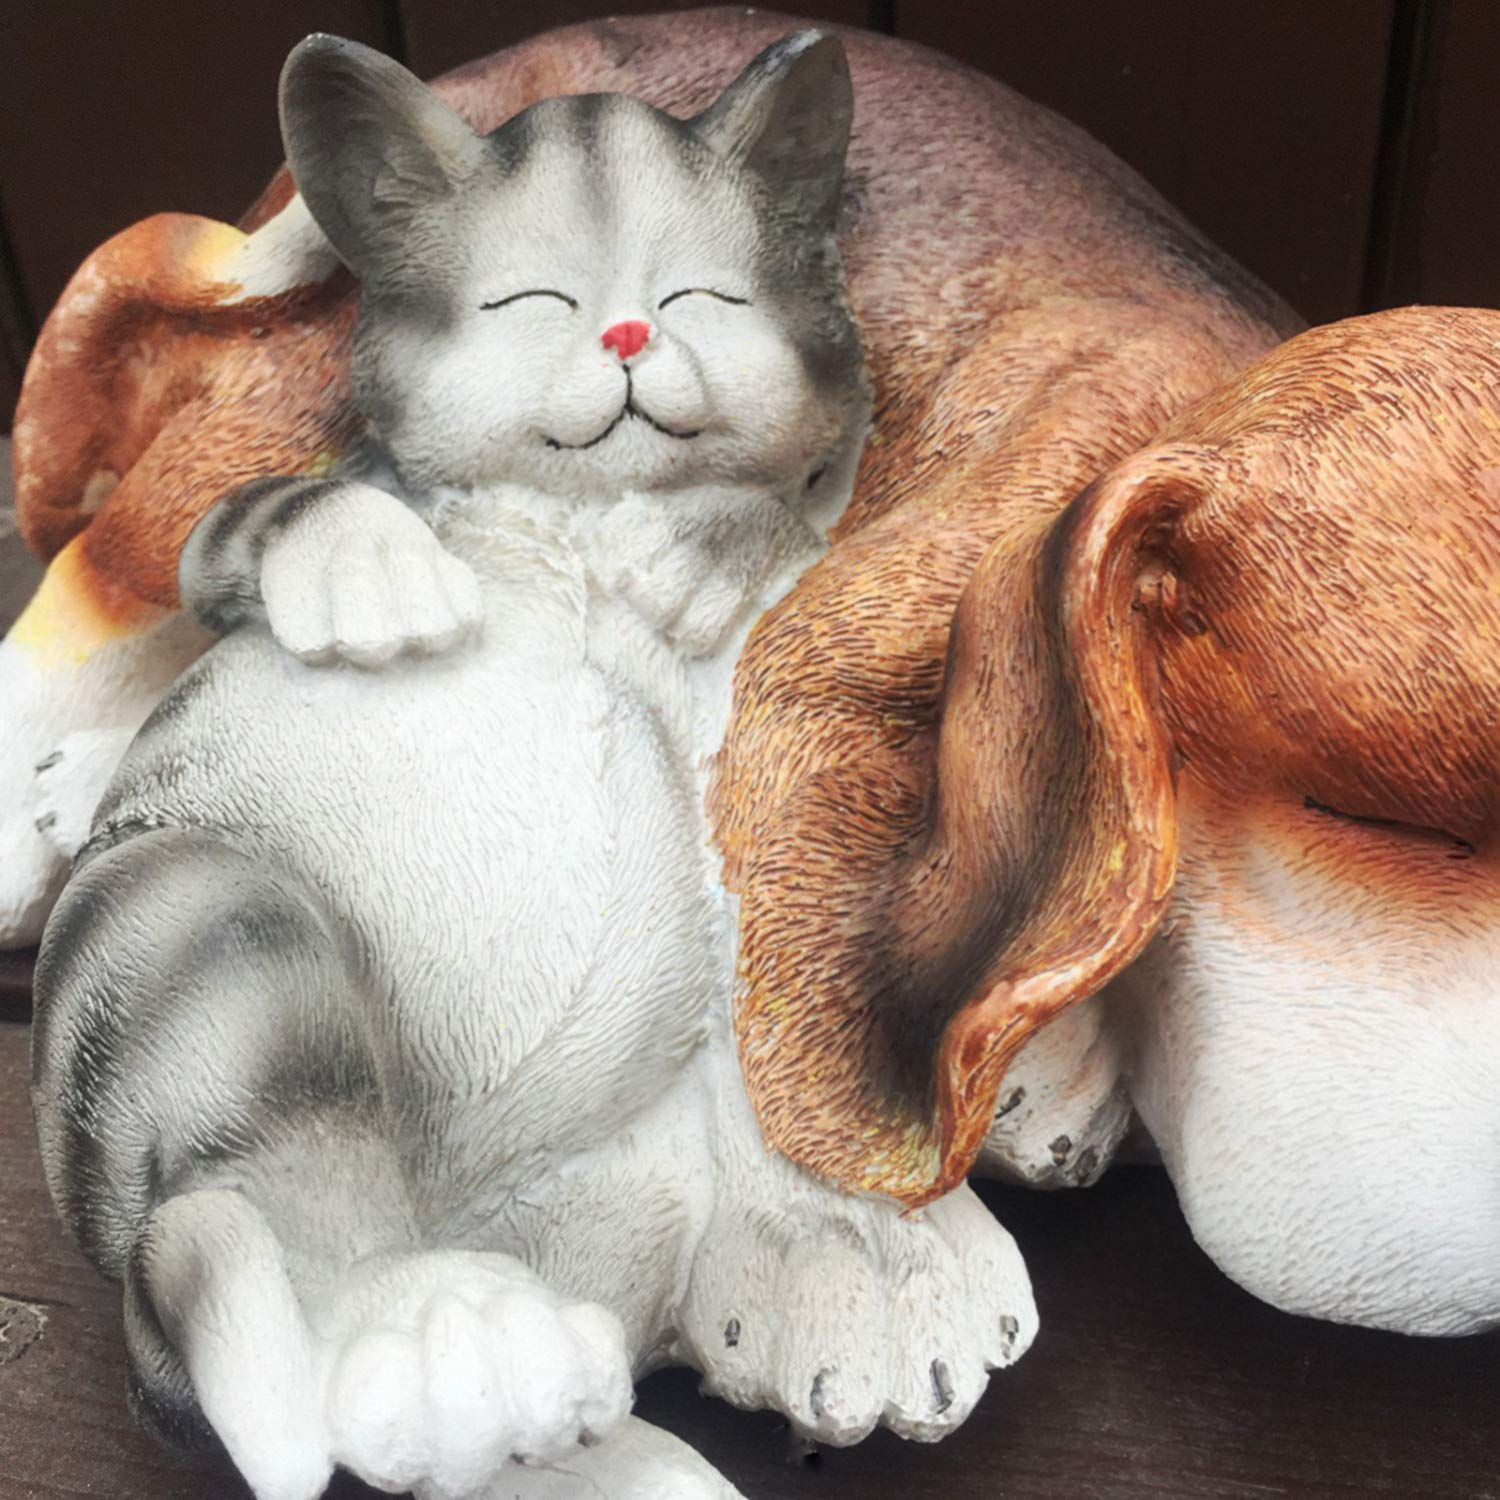 Anewgift Cats and Dogs Garden Statue Garden Statues Figurine Funny Garden Décor Outdoor Sculpture Resin Lawn Ornaments Decor - Best Indoor Outdoor Decorations for Patio Yard Office and House